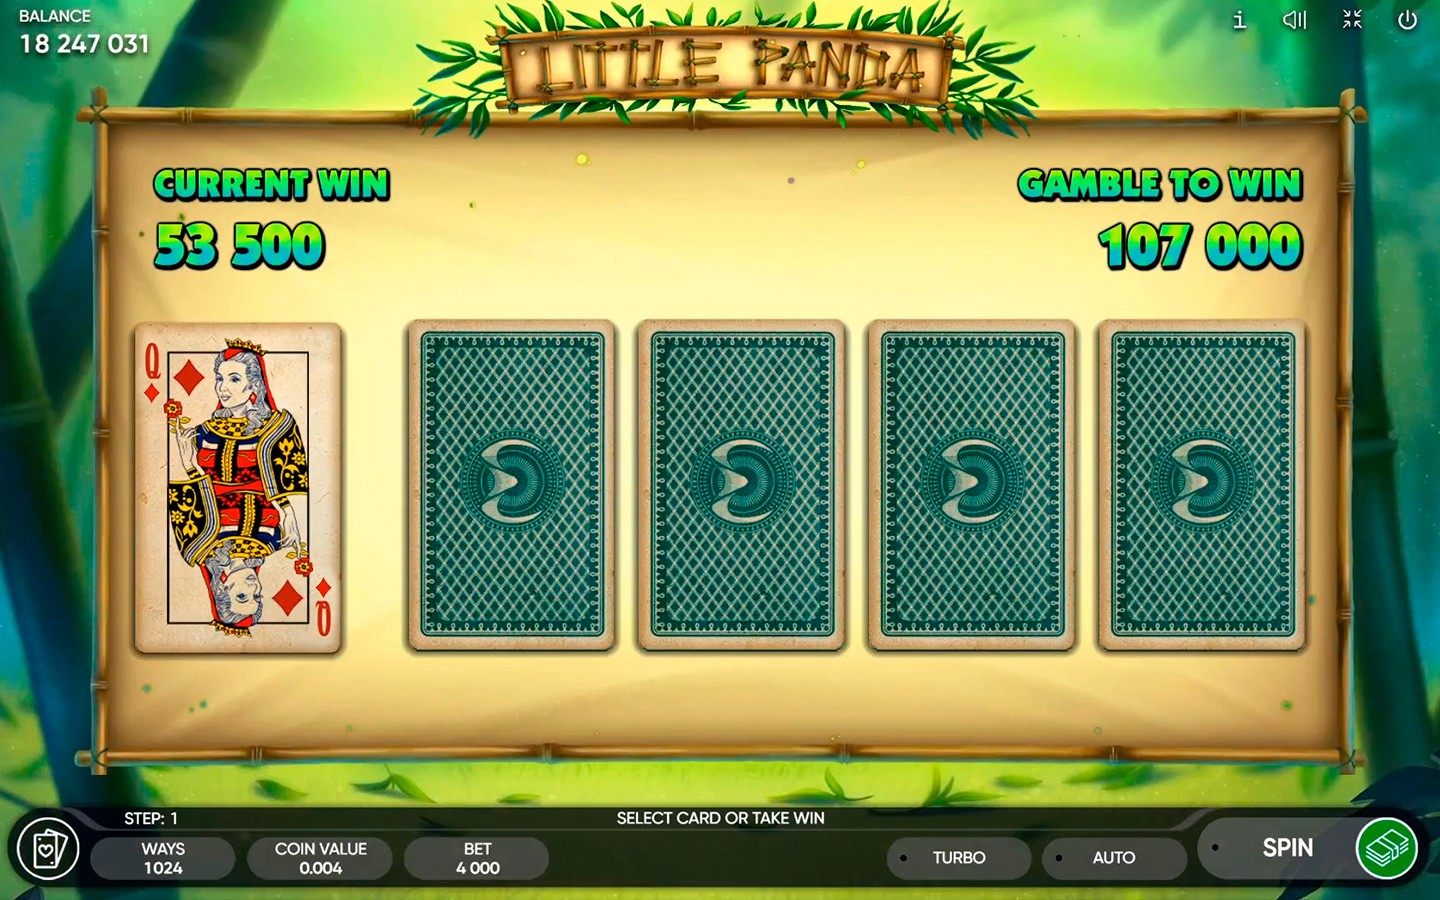 Premium Cute Slots | Play Little Panda slot now!